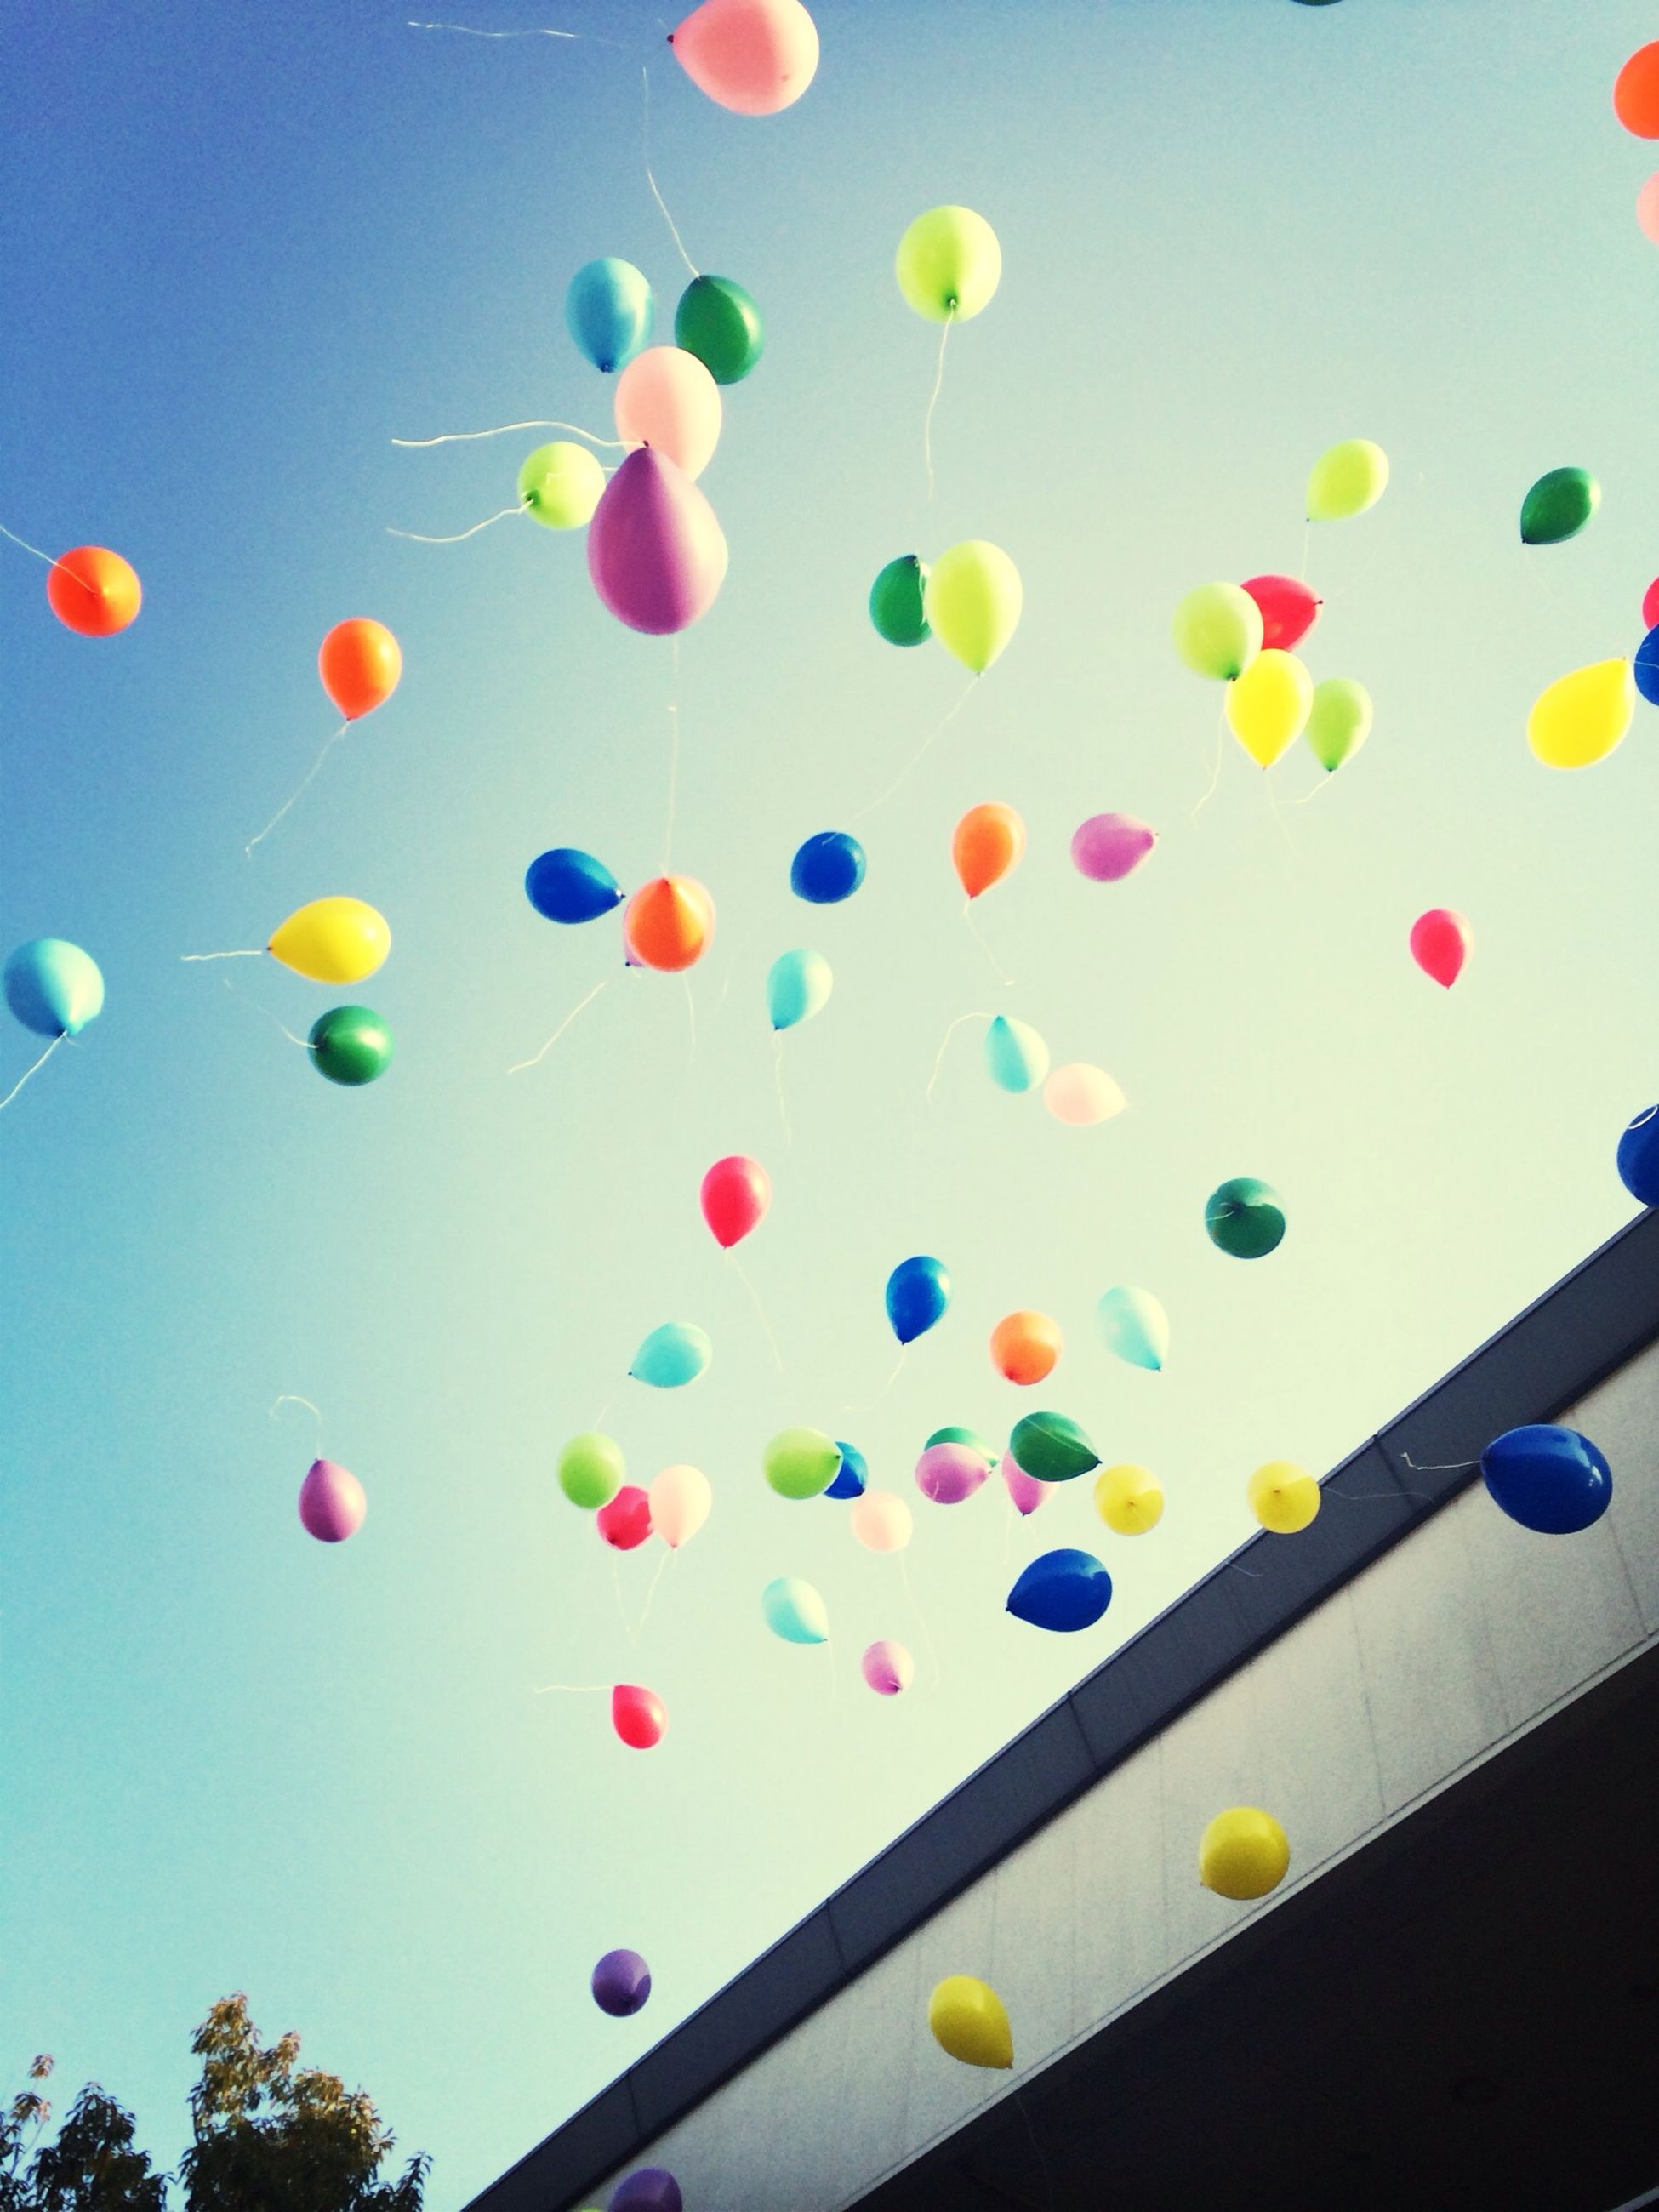 multi colored, colorful, balloon, variation, blue, mid-air, low angle view, celebration, large group of objects, hot air balloon, sky, in a row, no people, abundance, childhood, outdoors, pattern, circle, decoration, high angle view